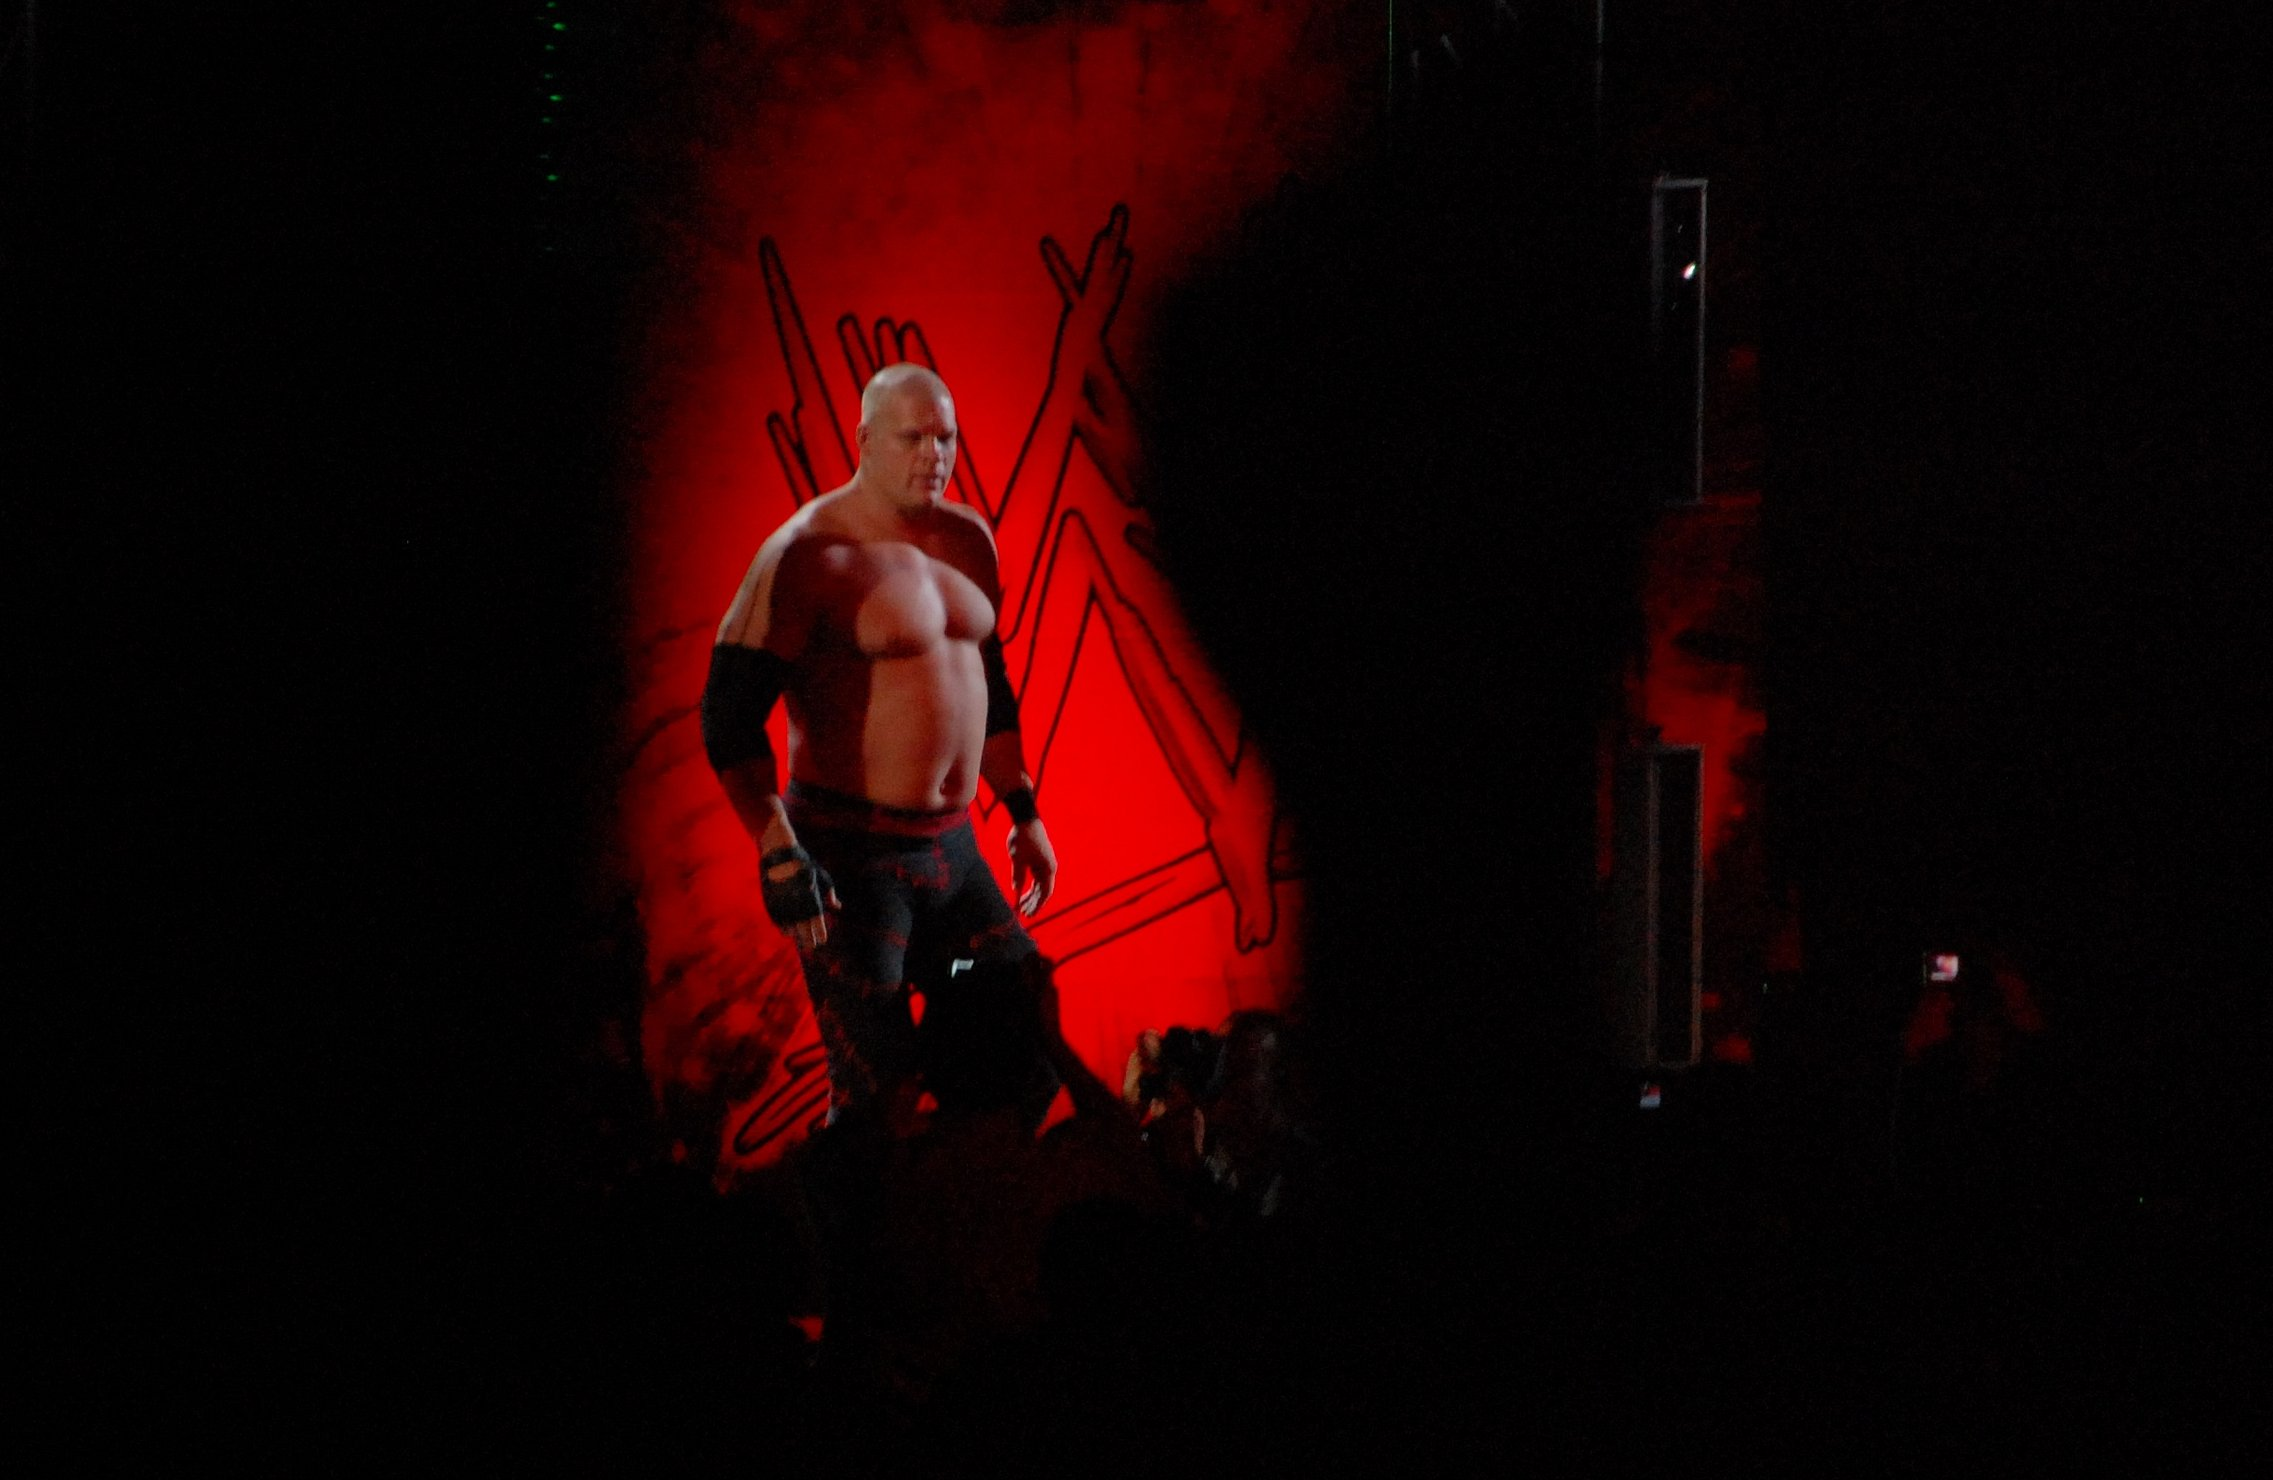 File:Kane is in da house!!!!.... again....jpg - Wikipedia